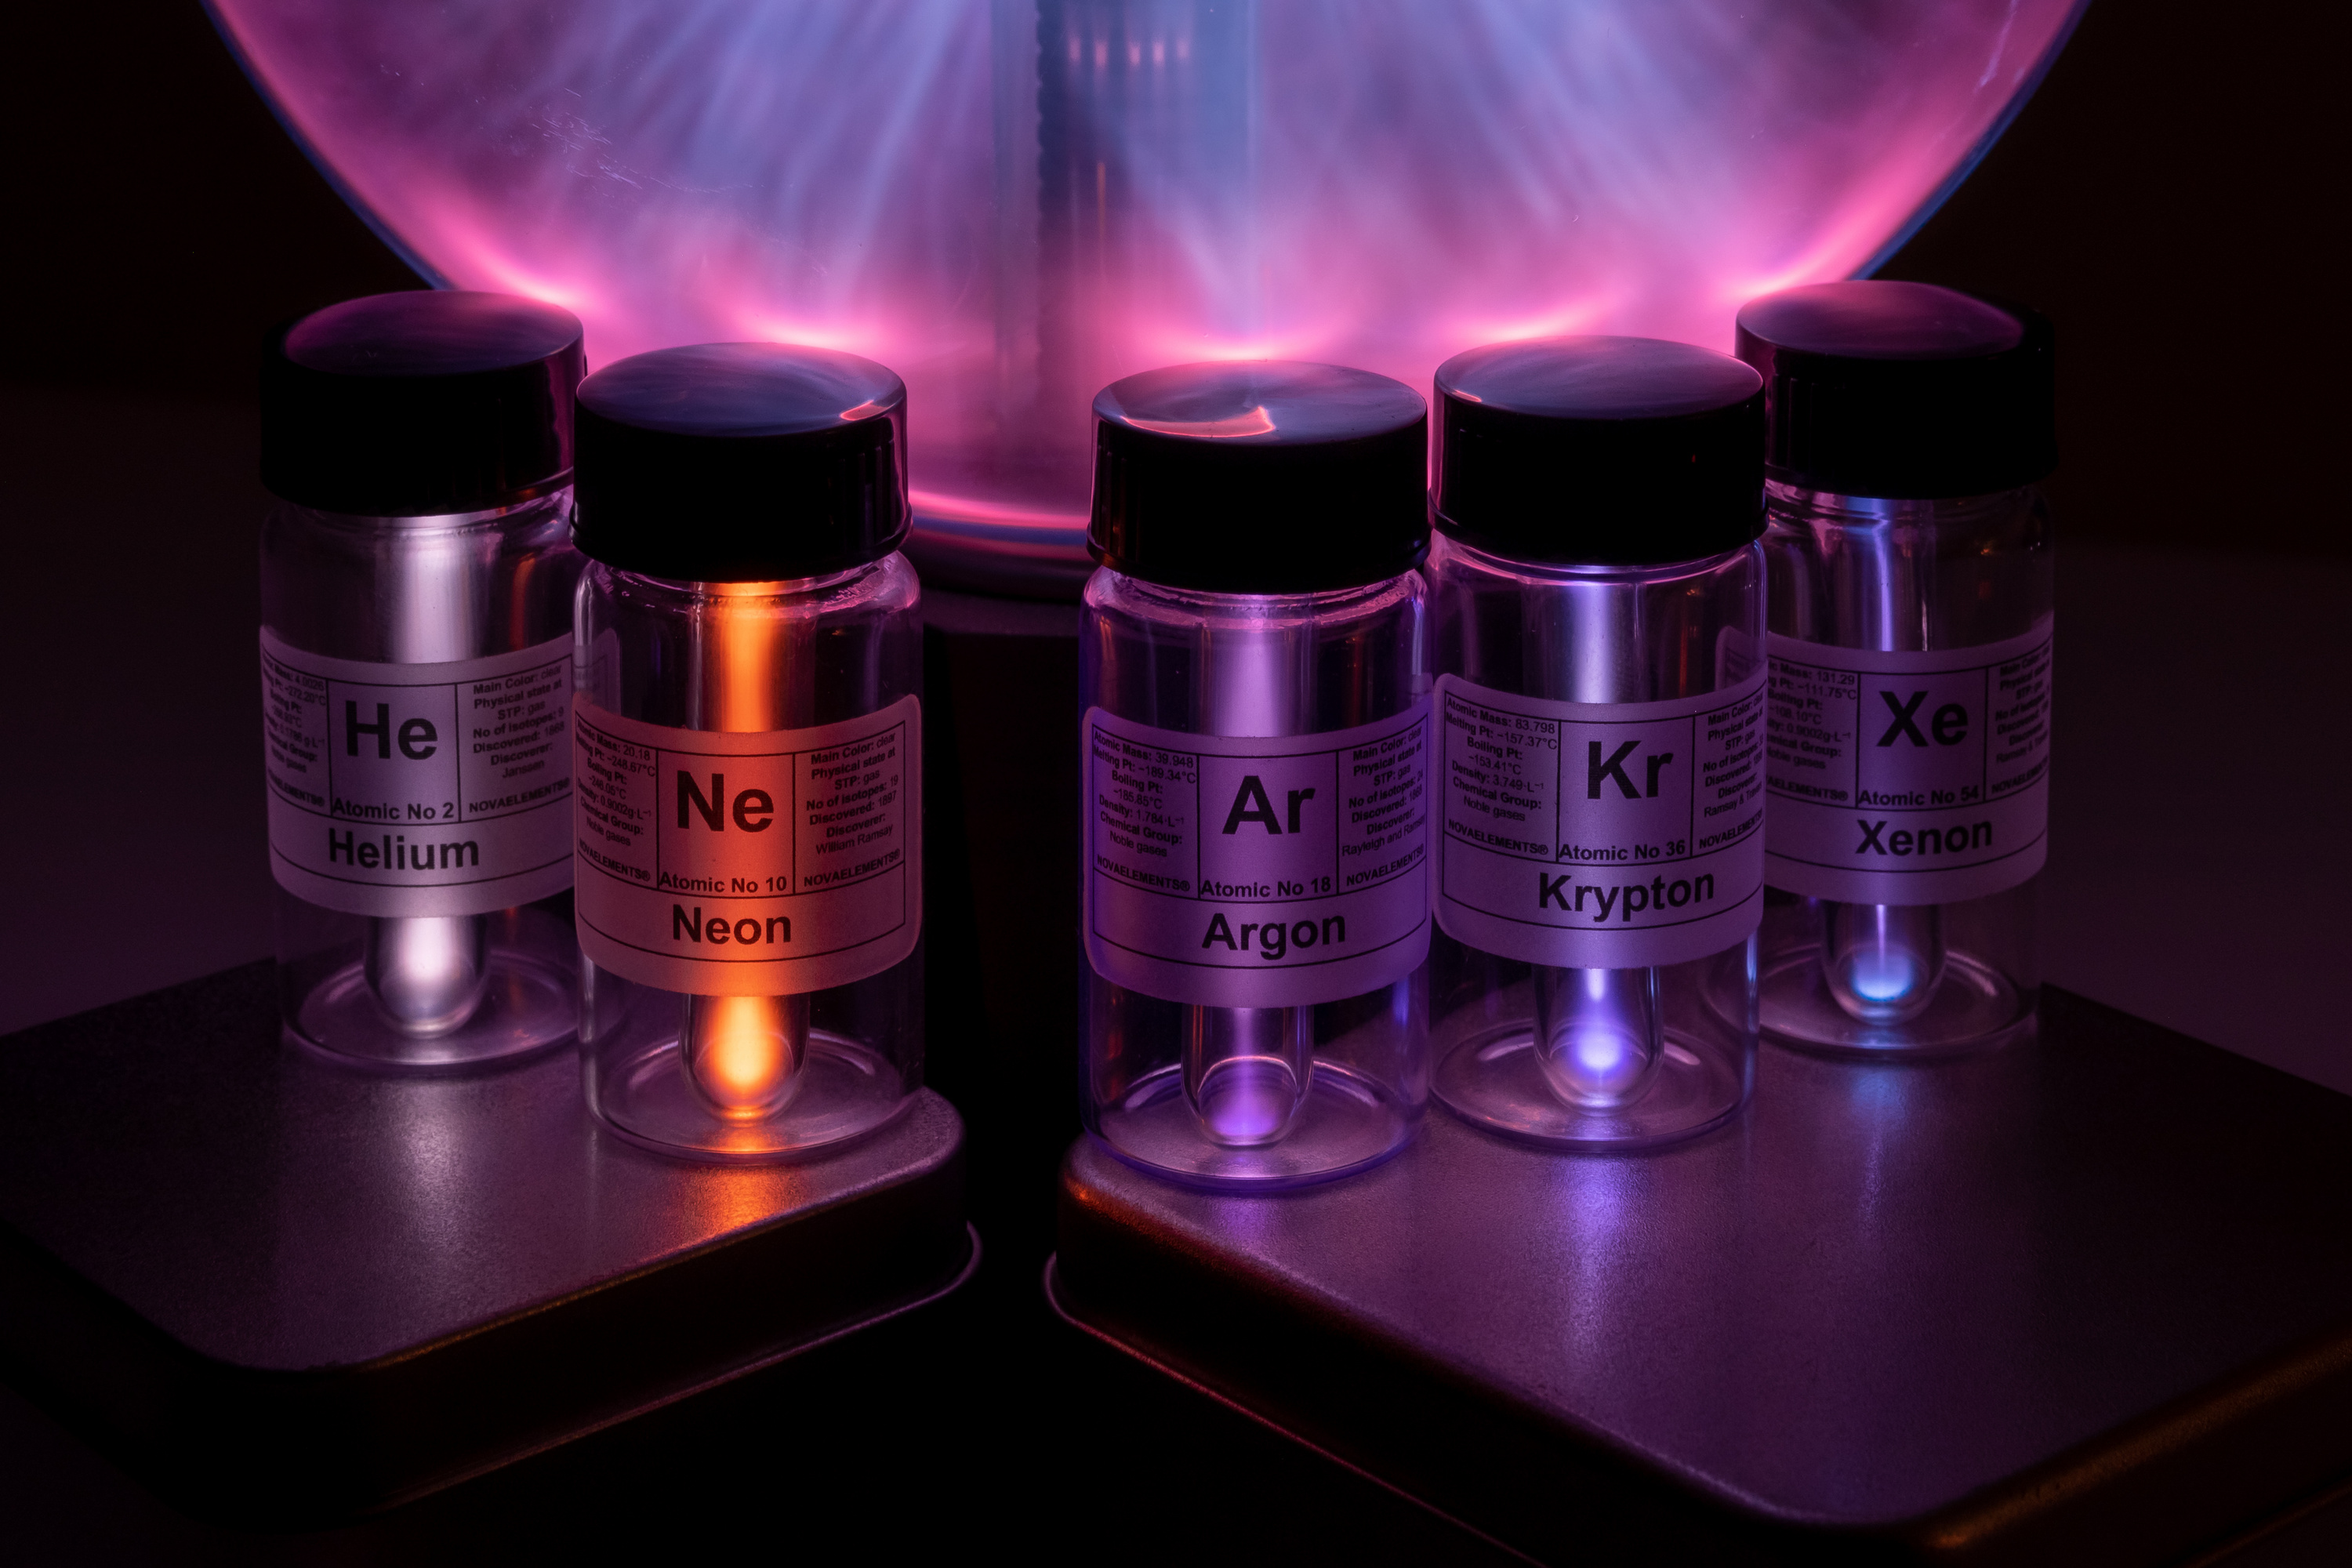 rarefied noble gases set, rarefied gases, rarefied helium ampoule, rarefied neon ampoule, rarefied argon ampoule, rarefied krypton ampoule, rarefied xenon ampoule